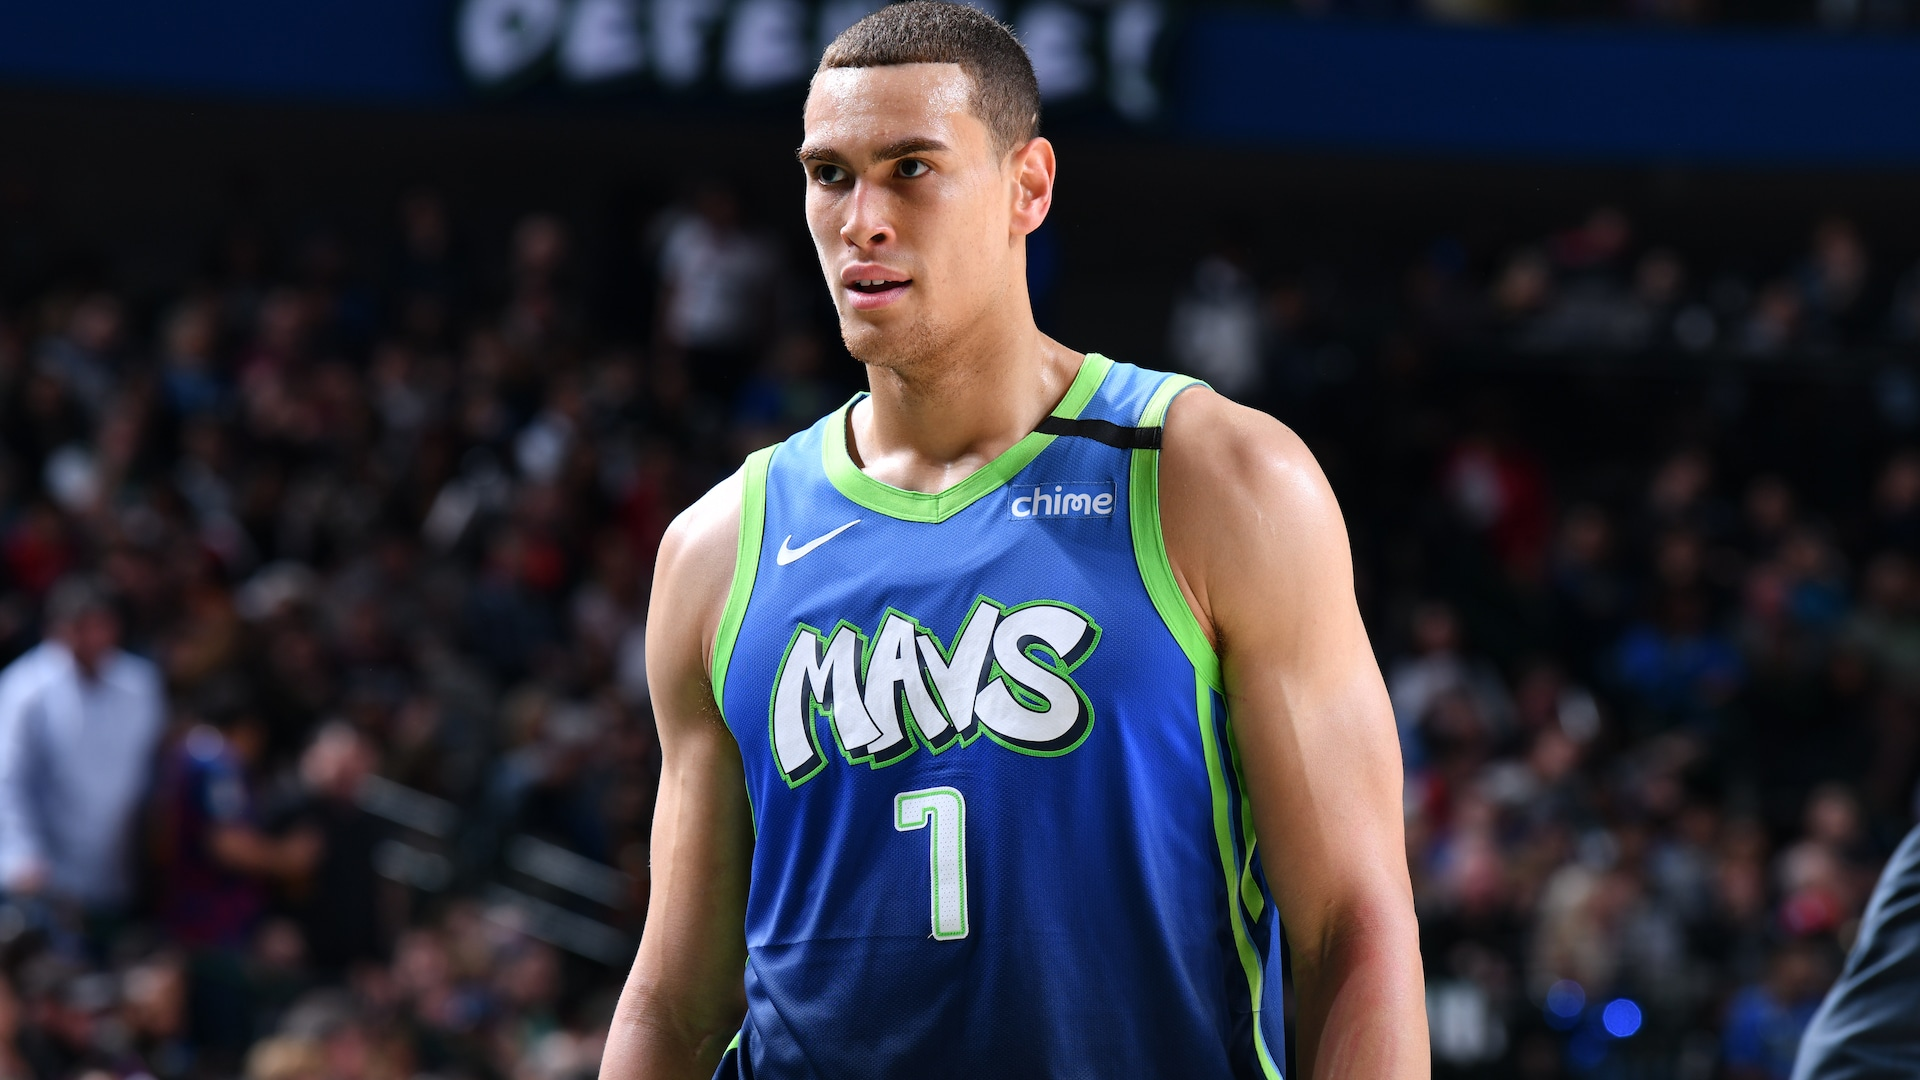 Mavs center Dwight Powell has surgery for season-ending torn Achilles